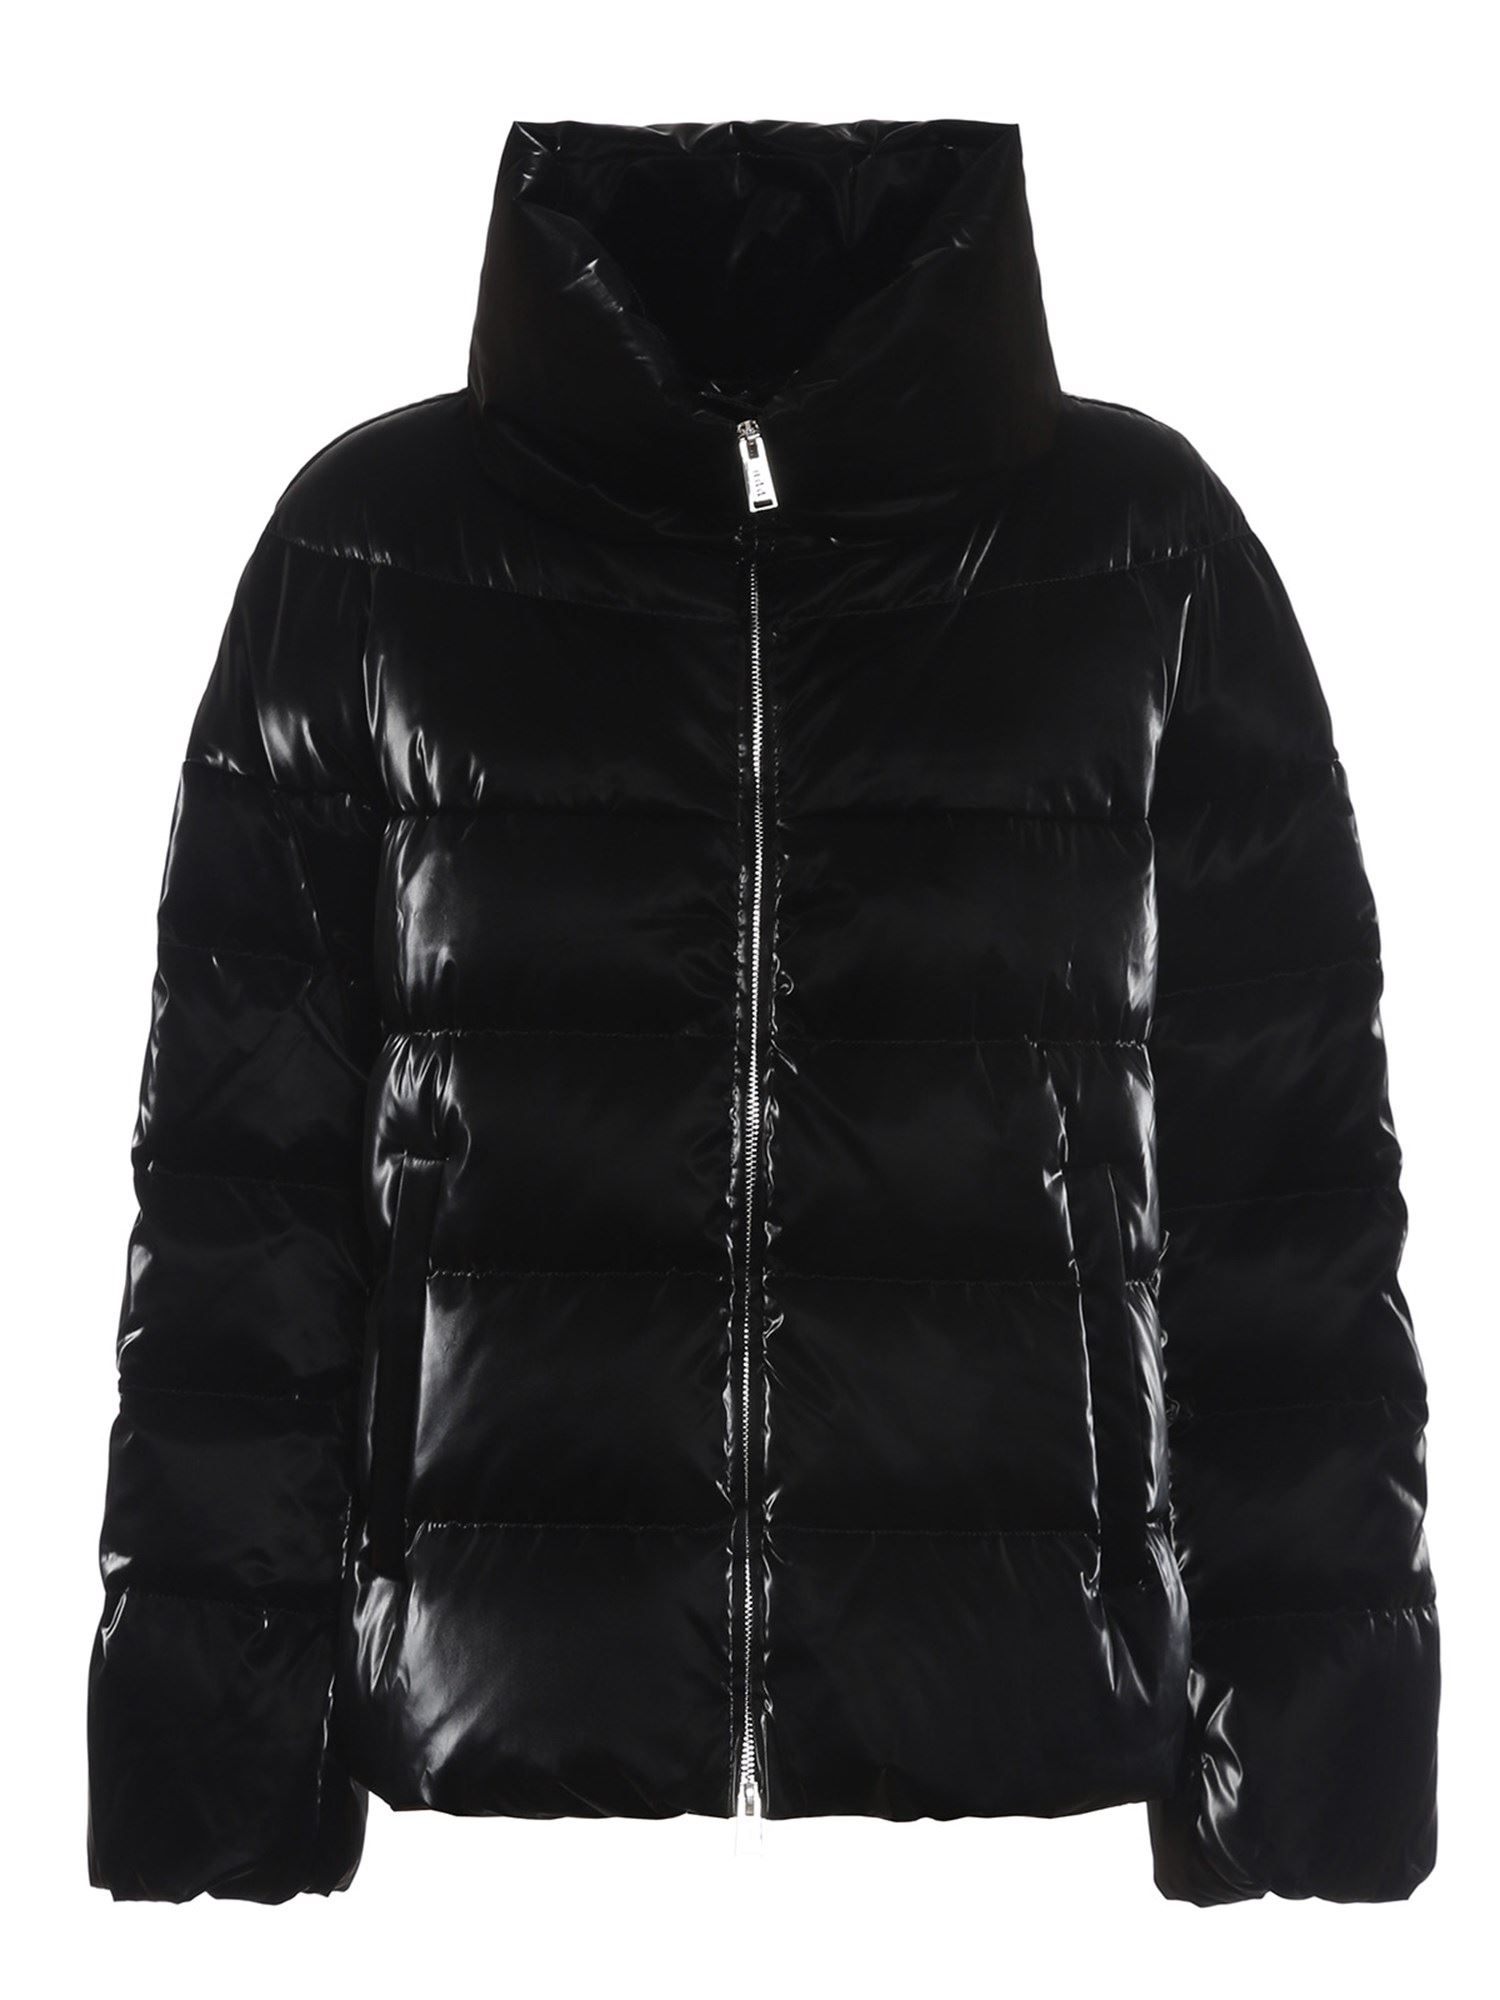 ADD ADD PATENT EFFECT SHORT PUFFER JACKET